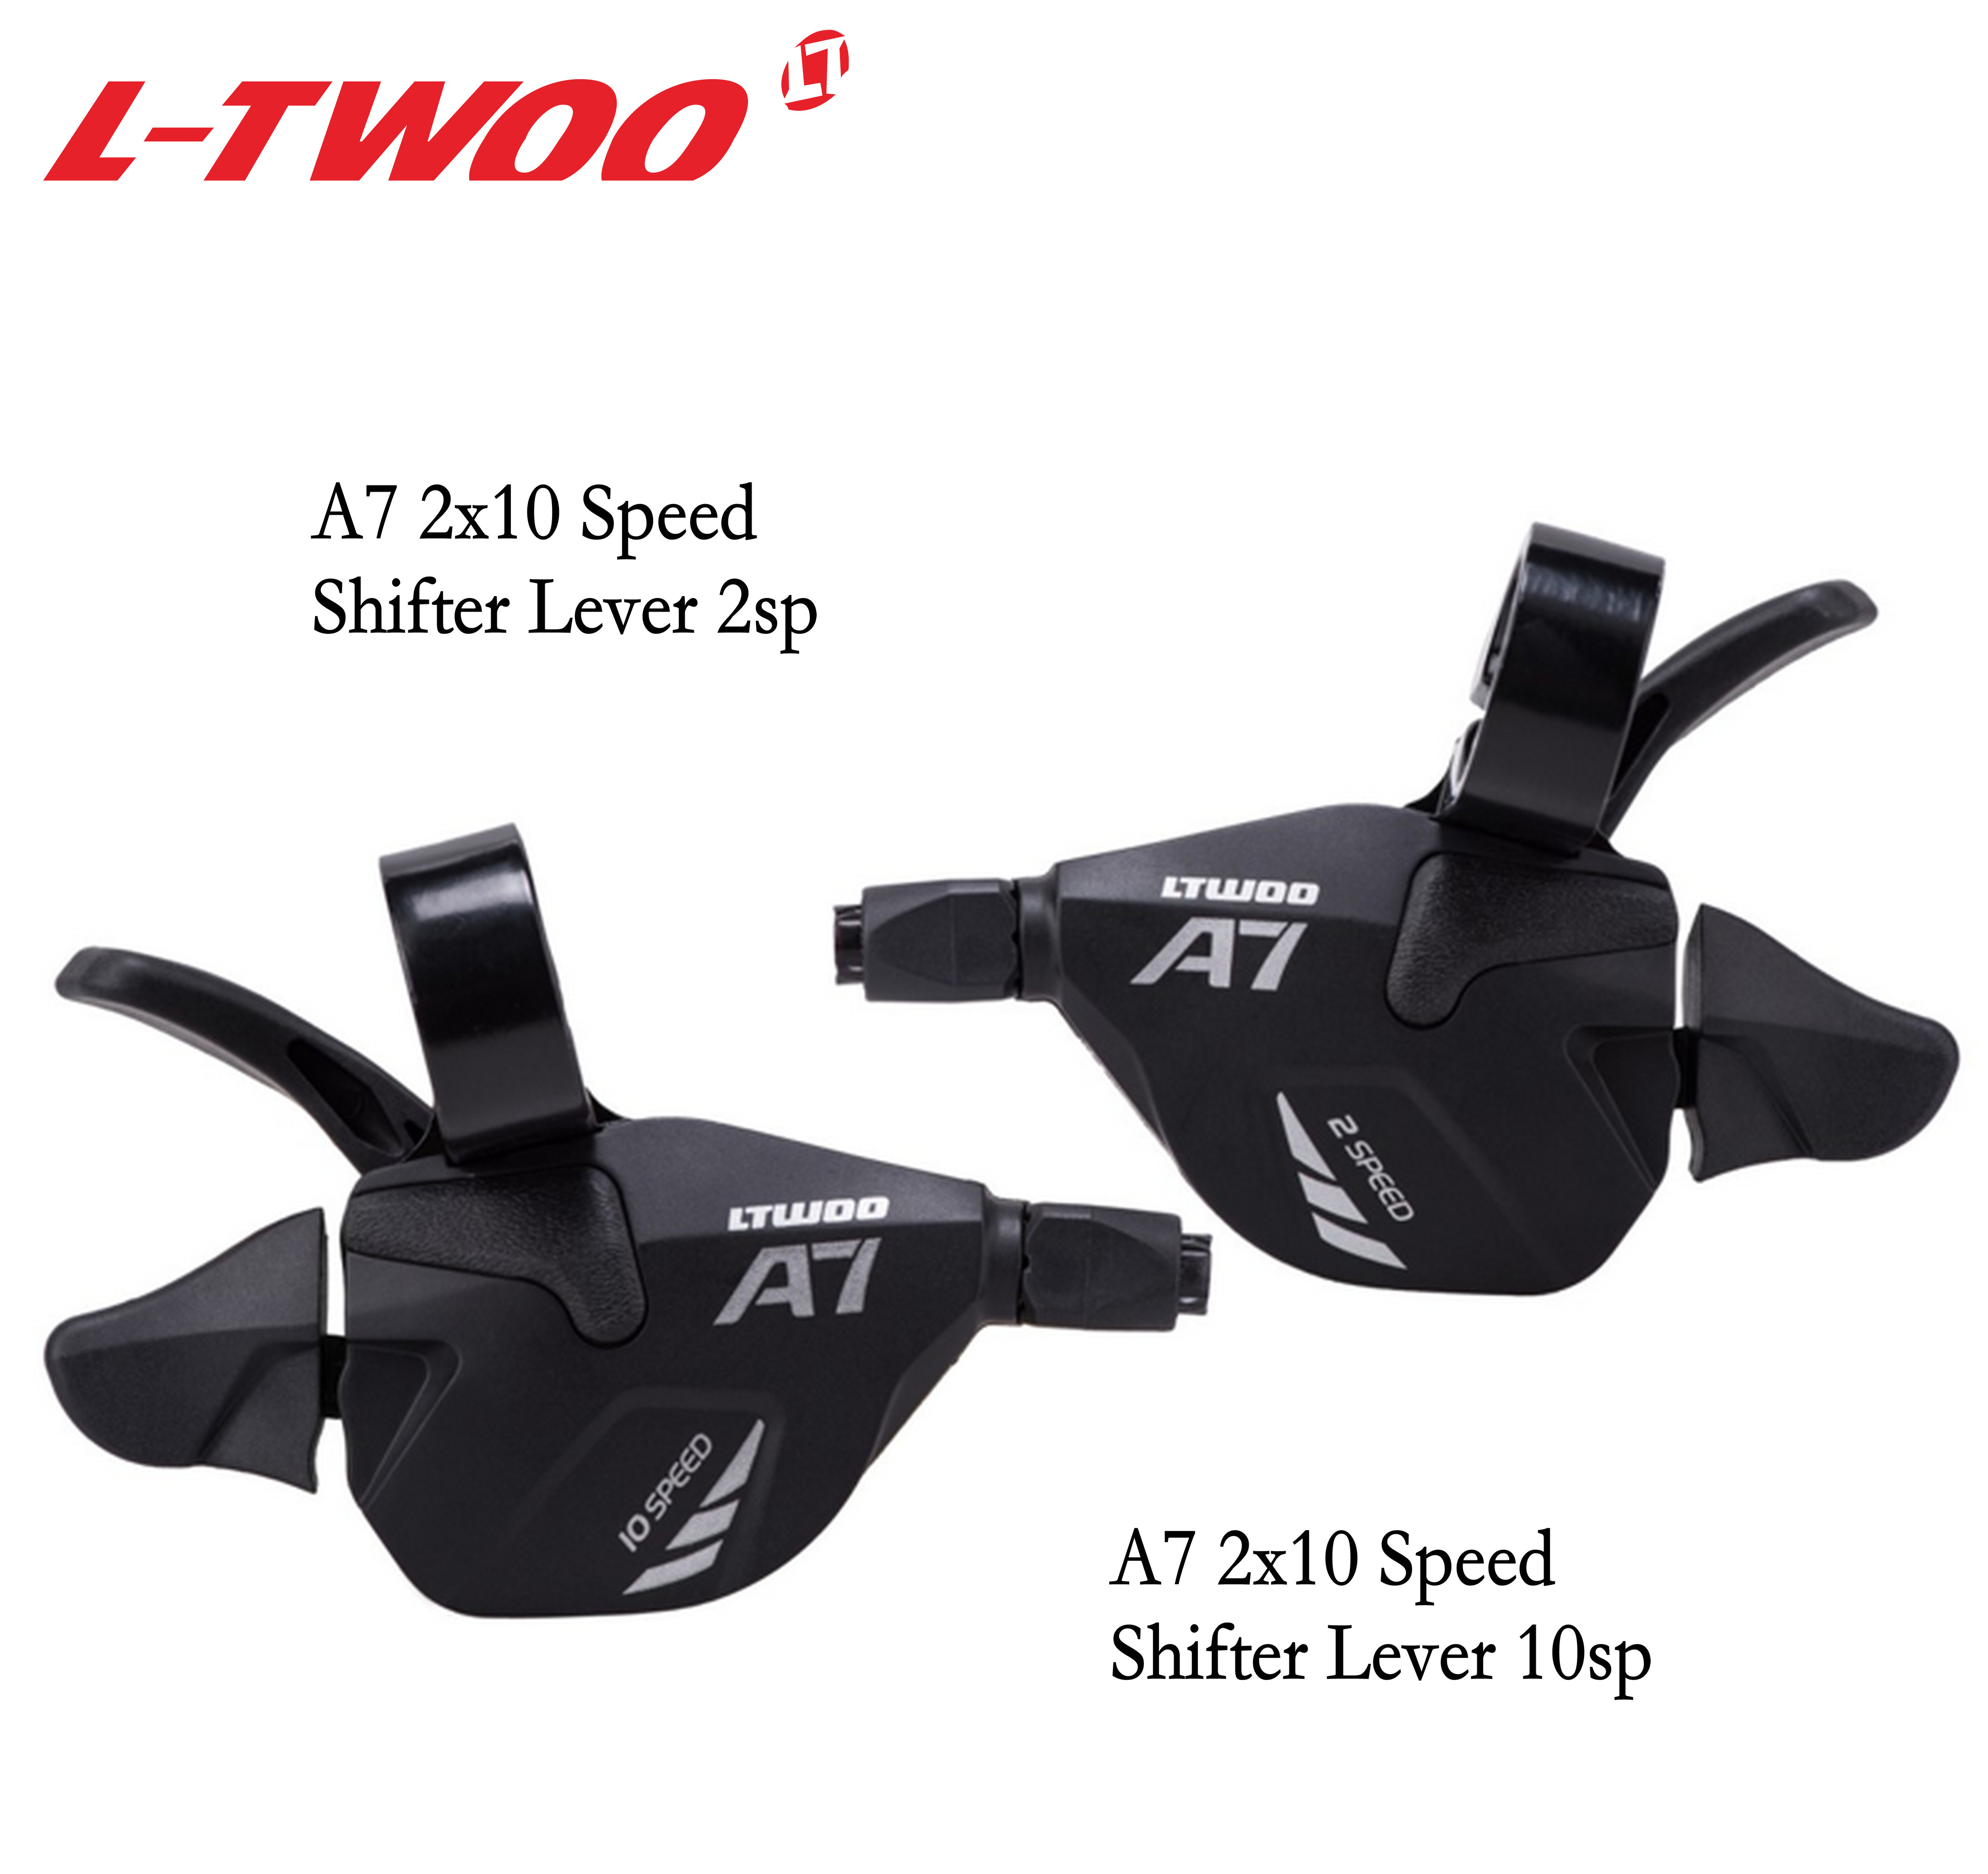 LTWOO A7 LTWOO <font><b>Groupset</b></font> <font><b>2X10</b></font> 3X10 Speed 30S 20S Trigger Shifter Lever for MTB Mountain bike Cassette 1146T/50T, X9X7 spare parts image